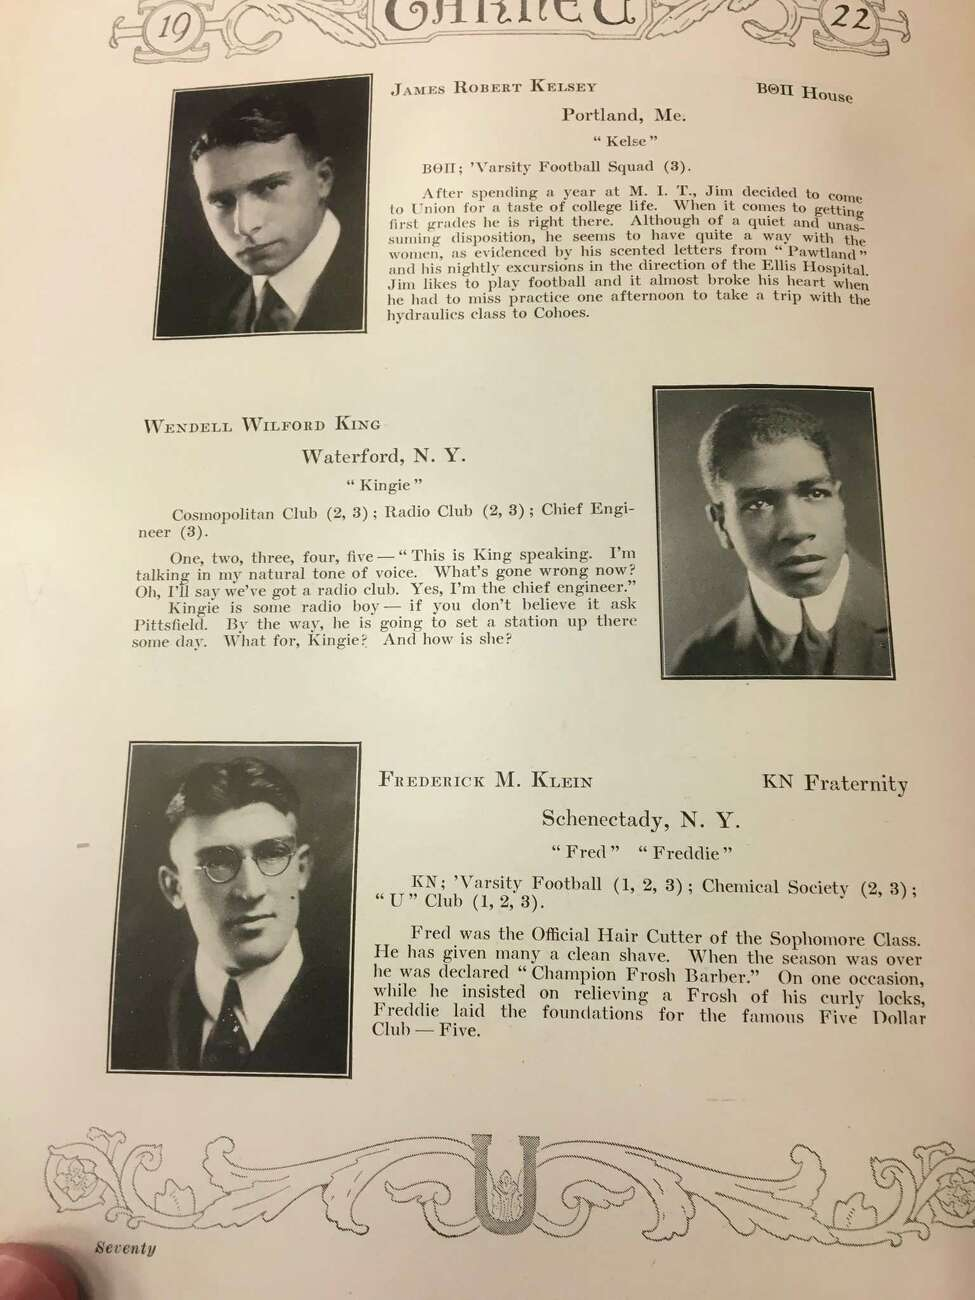 A page from a 1922 copy of The Garnet, the Union College yearbook. Wendell King's entry is in the middle. He lived in Waterford at the time.